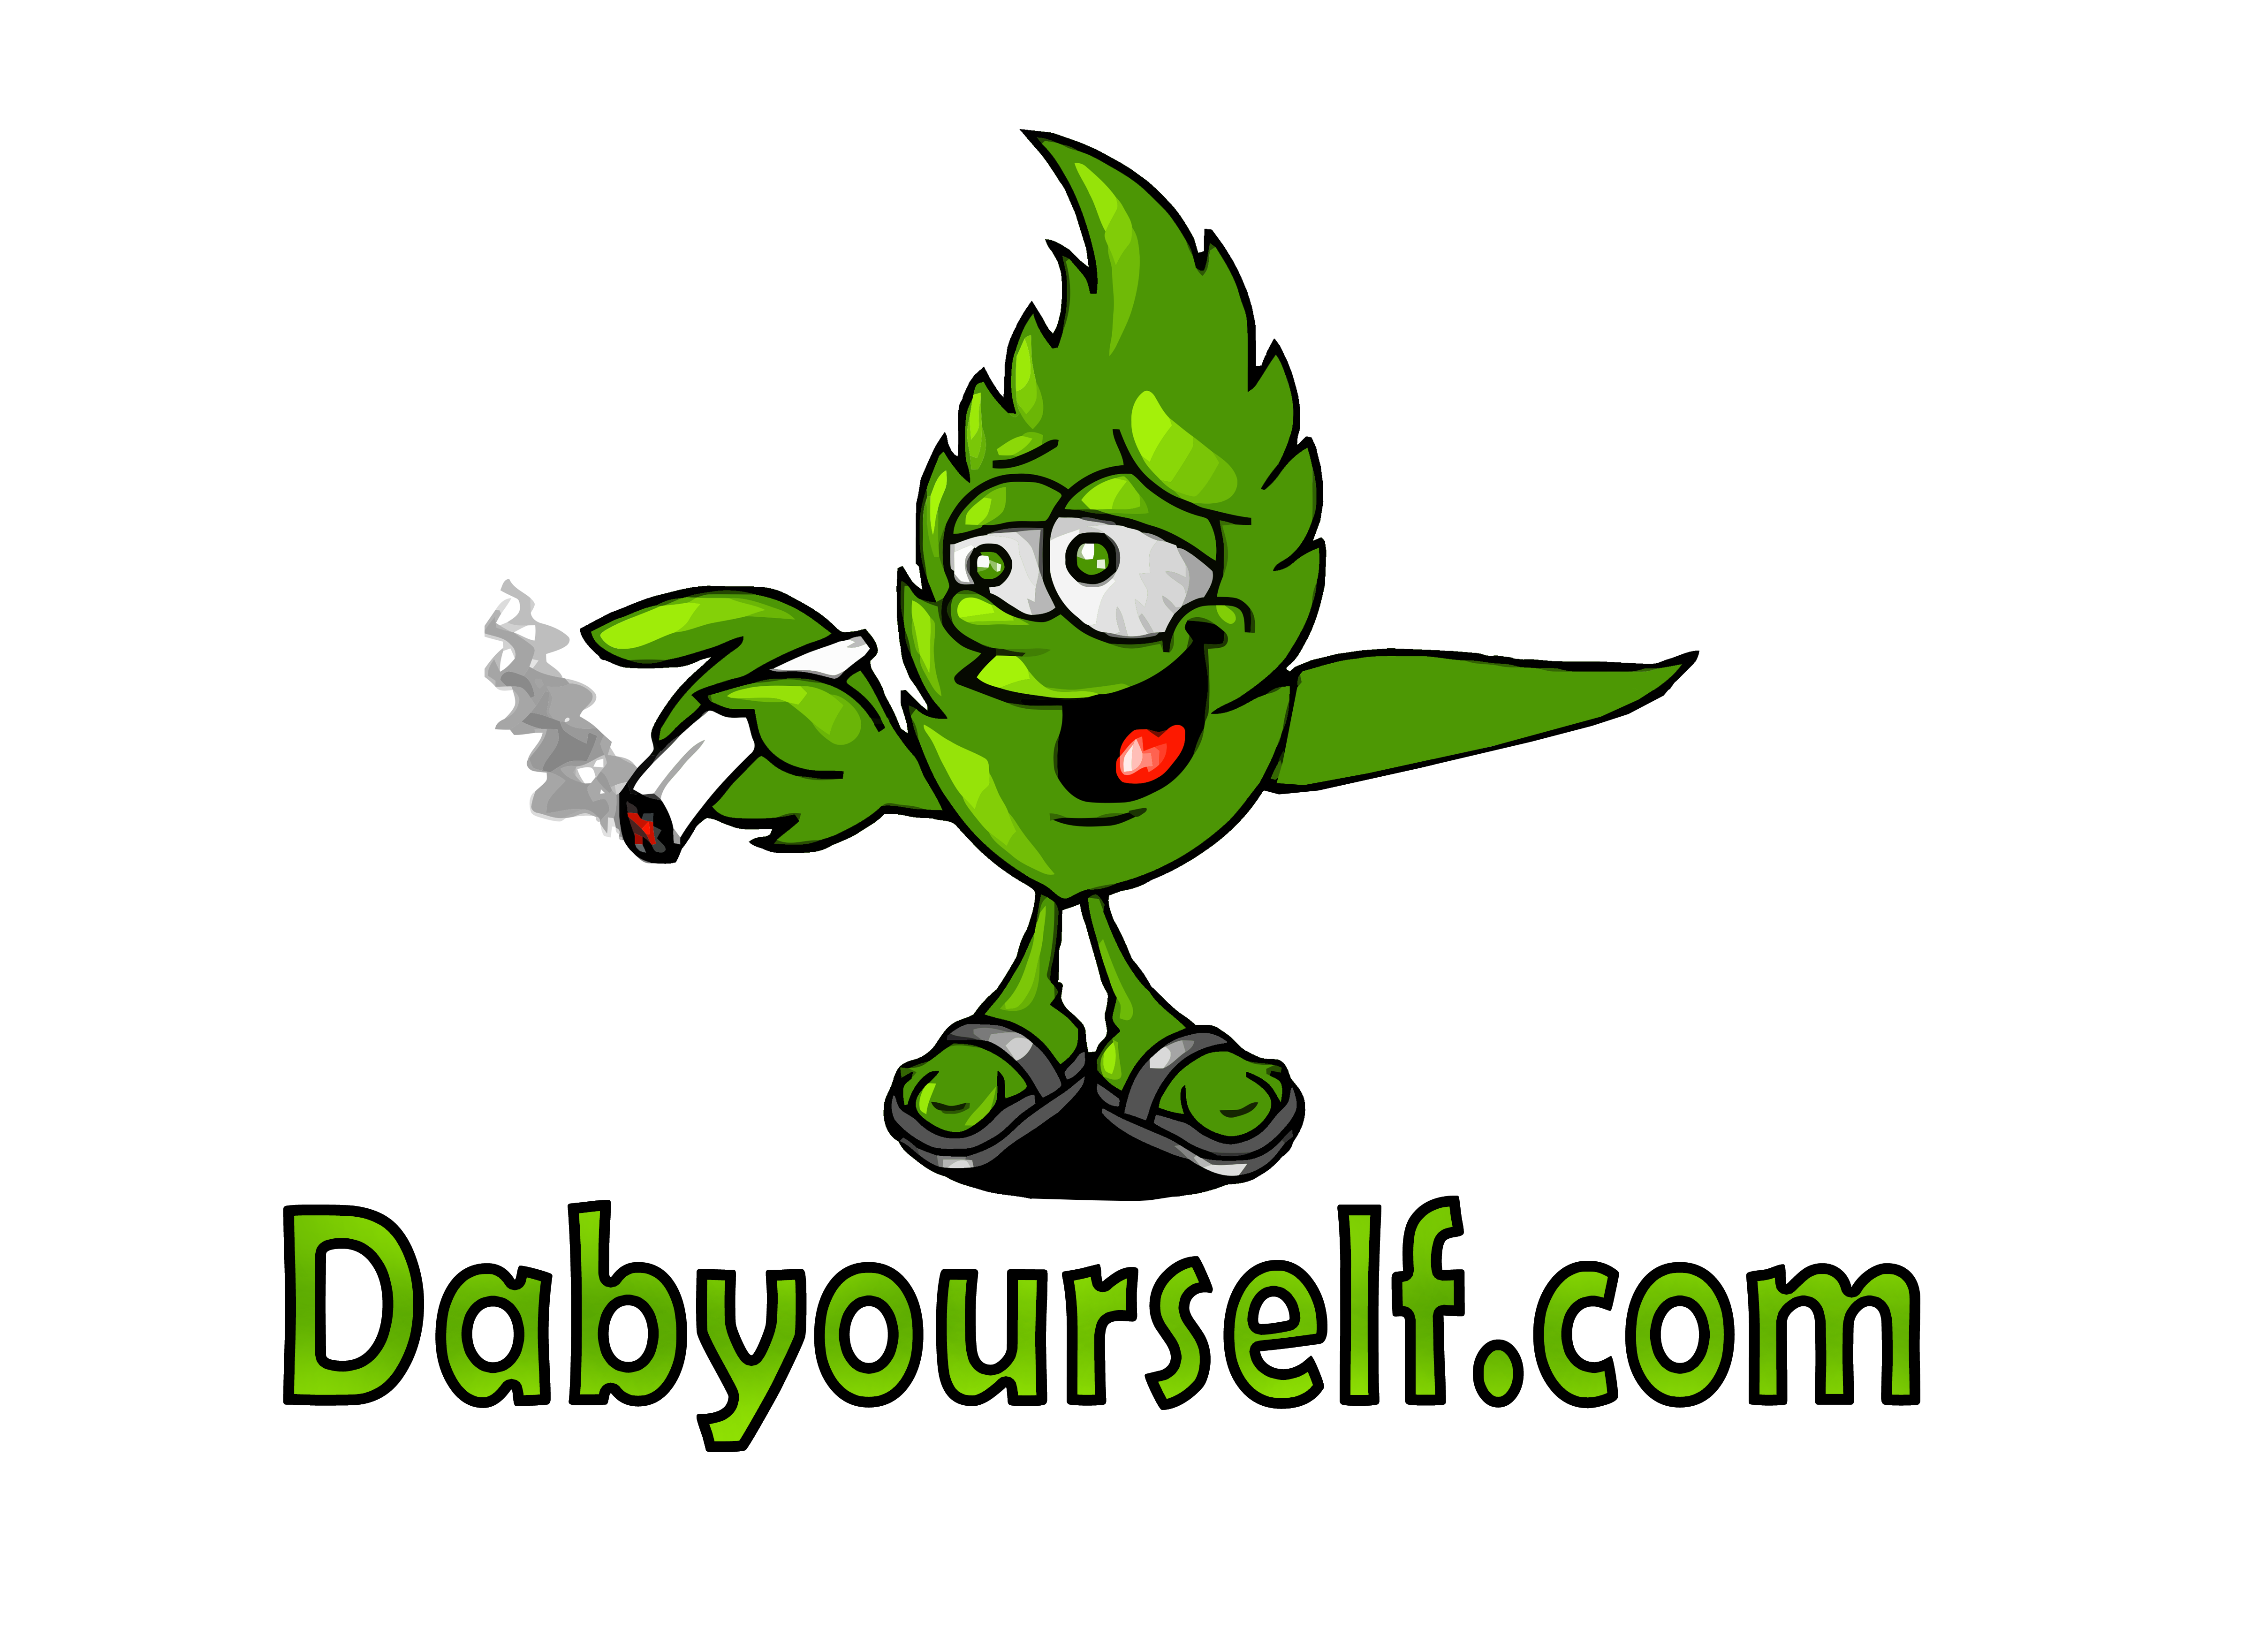 DABYOURSELF.COM Online Headshop-Rigs, Bongs